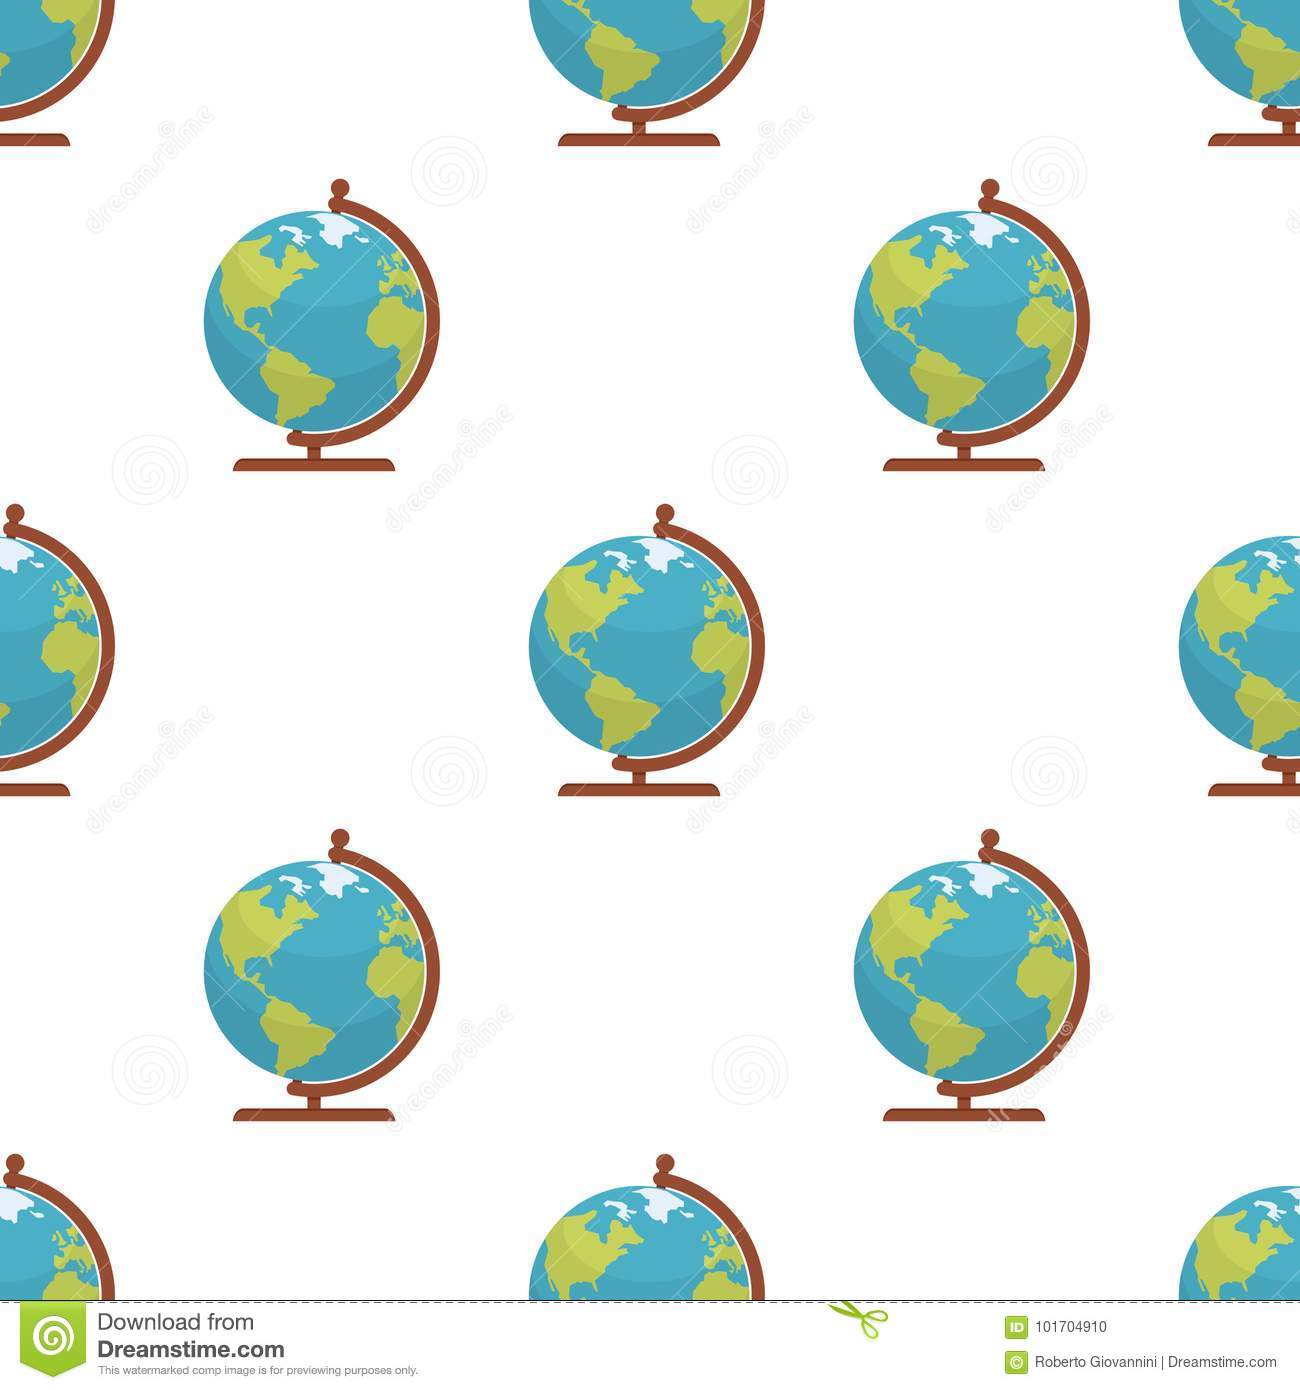 Globe World Map Icon Seamless Pattern Stock Vector ... on world map terrain, simple world map vector, world map outline vector, world map with symbols, world globe vector, world map social media icons, world map silhouette vector, world map to color, usa map icon vector, world map vector art, flat world map vector, world map vector ai, world icon no background, vintage map clip art vector, world map infographic element, us map vector, world map background vector, world map outline eps, world map clip art,